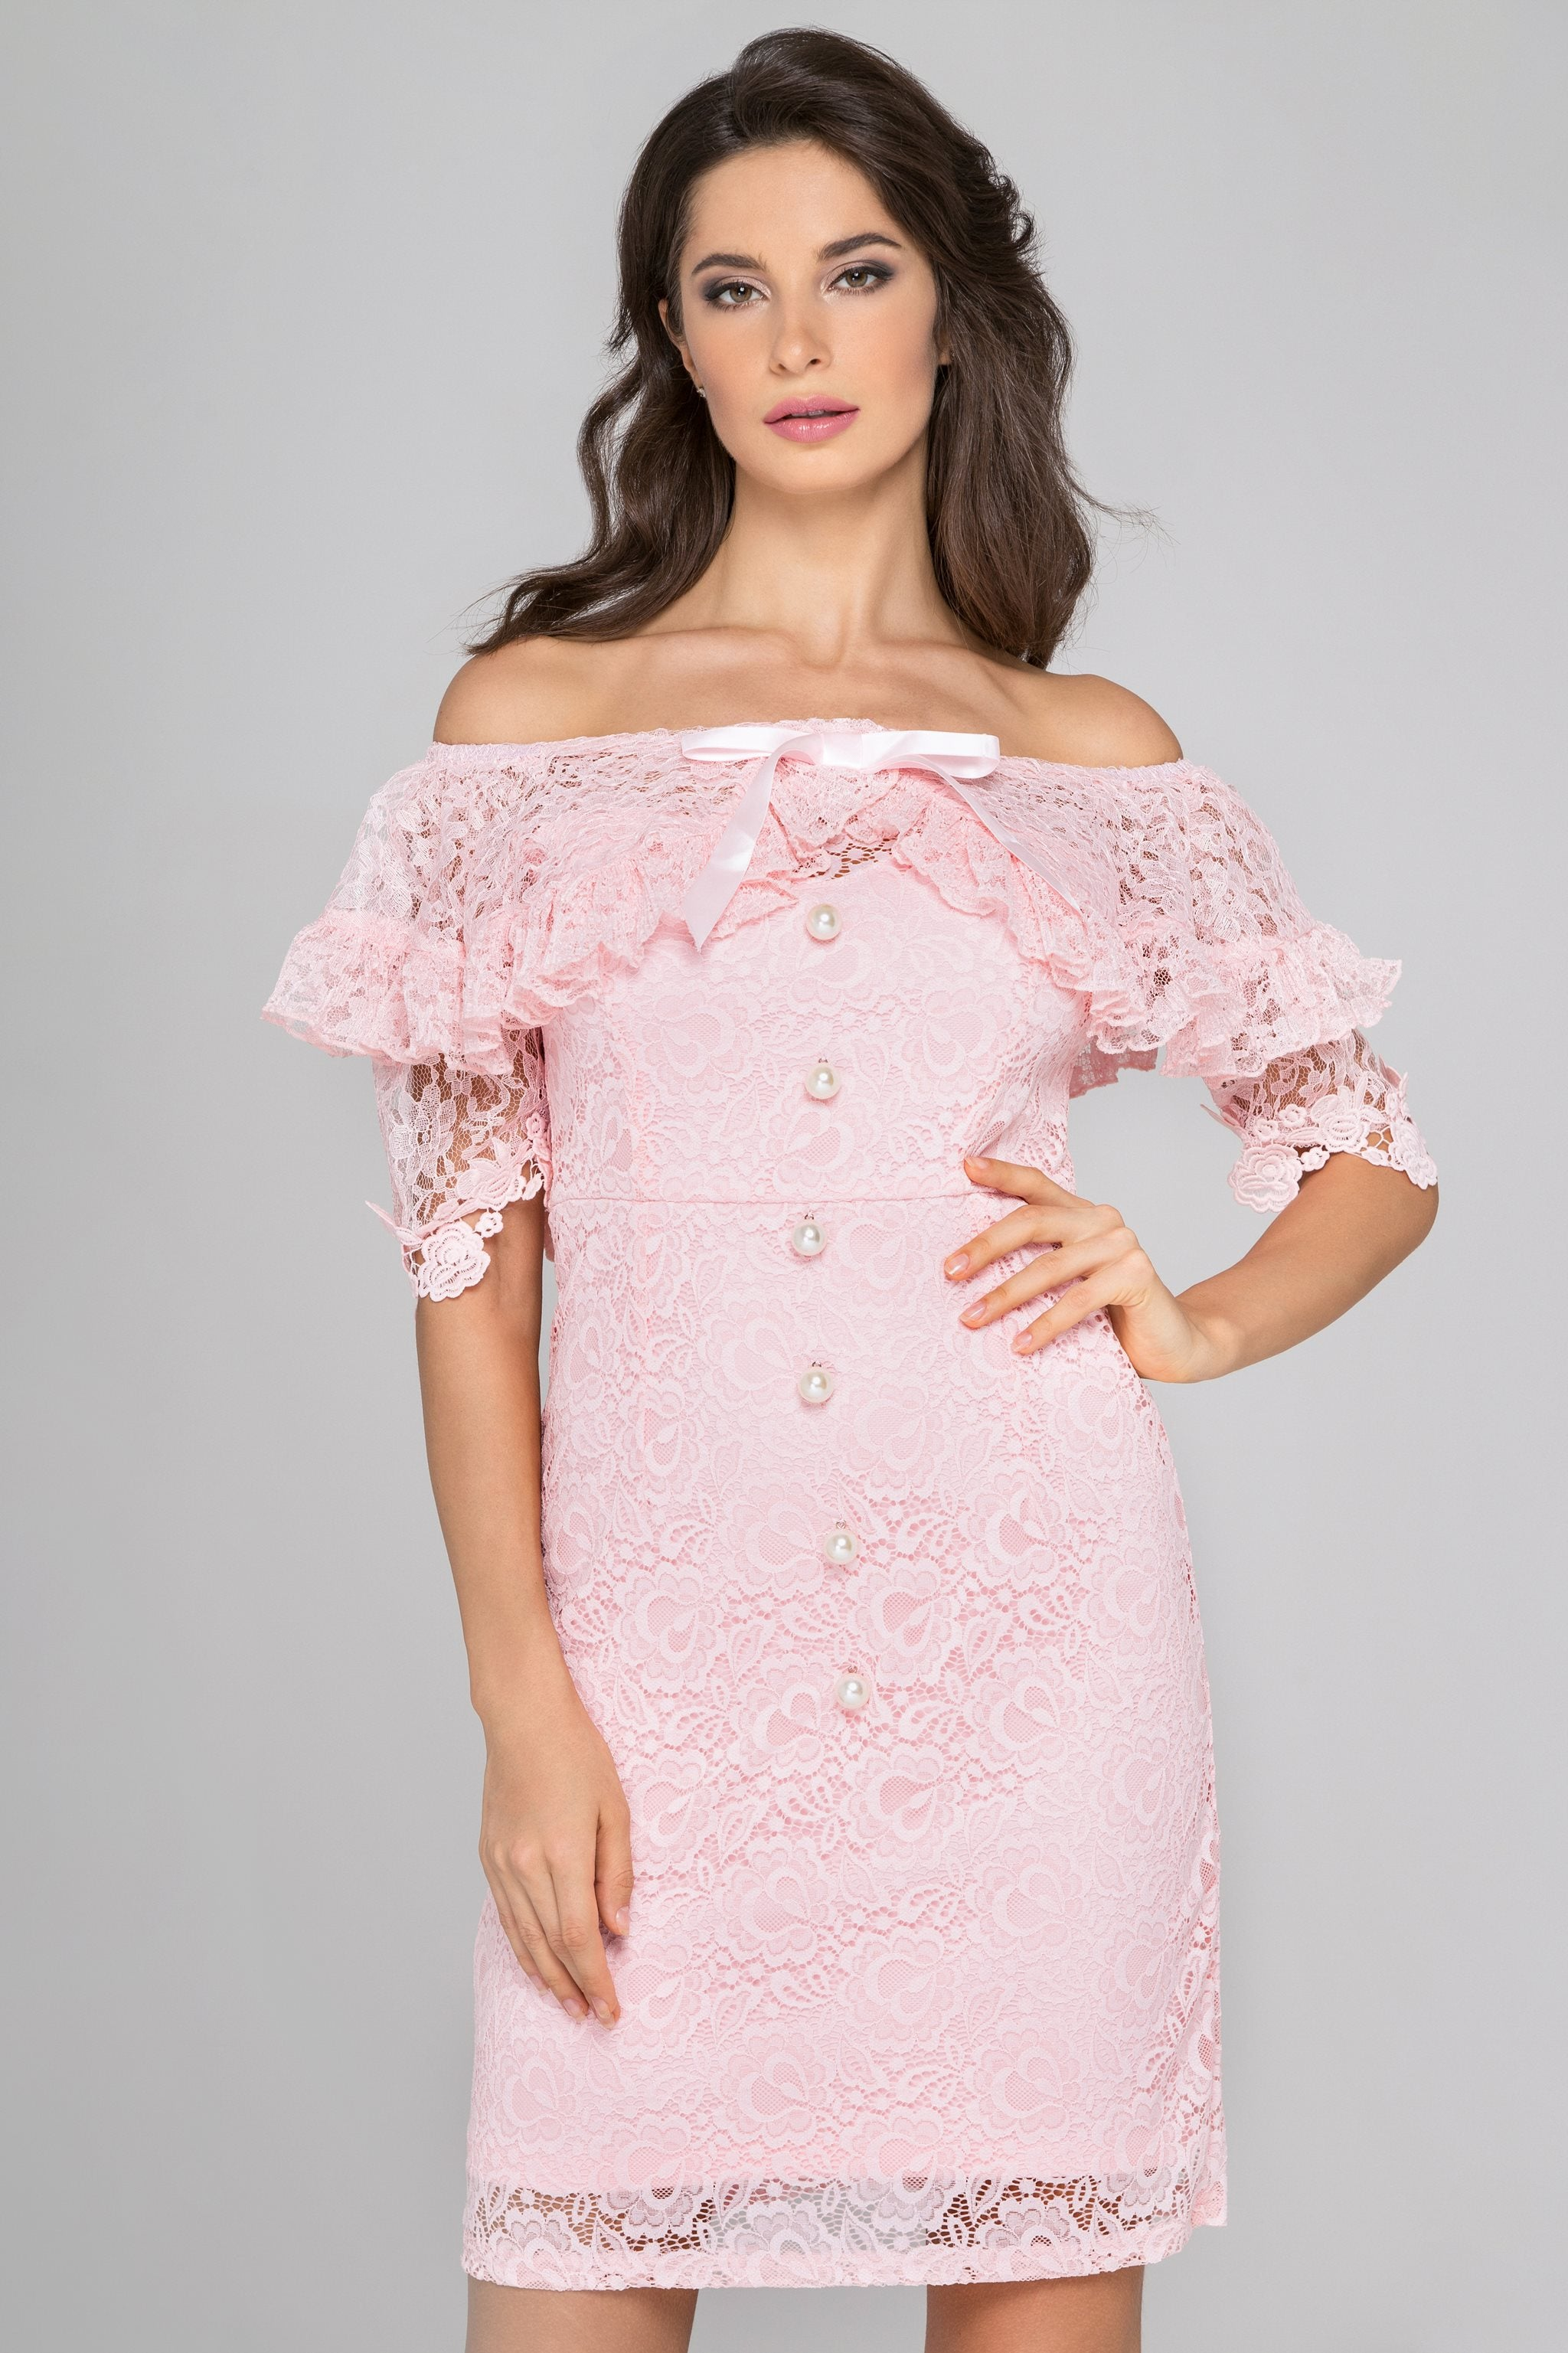 69e2260e69db Pink Lace Pearl Off Shoulder Mini Dress – OwnTheLooks